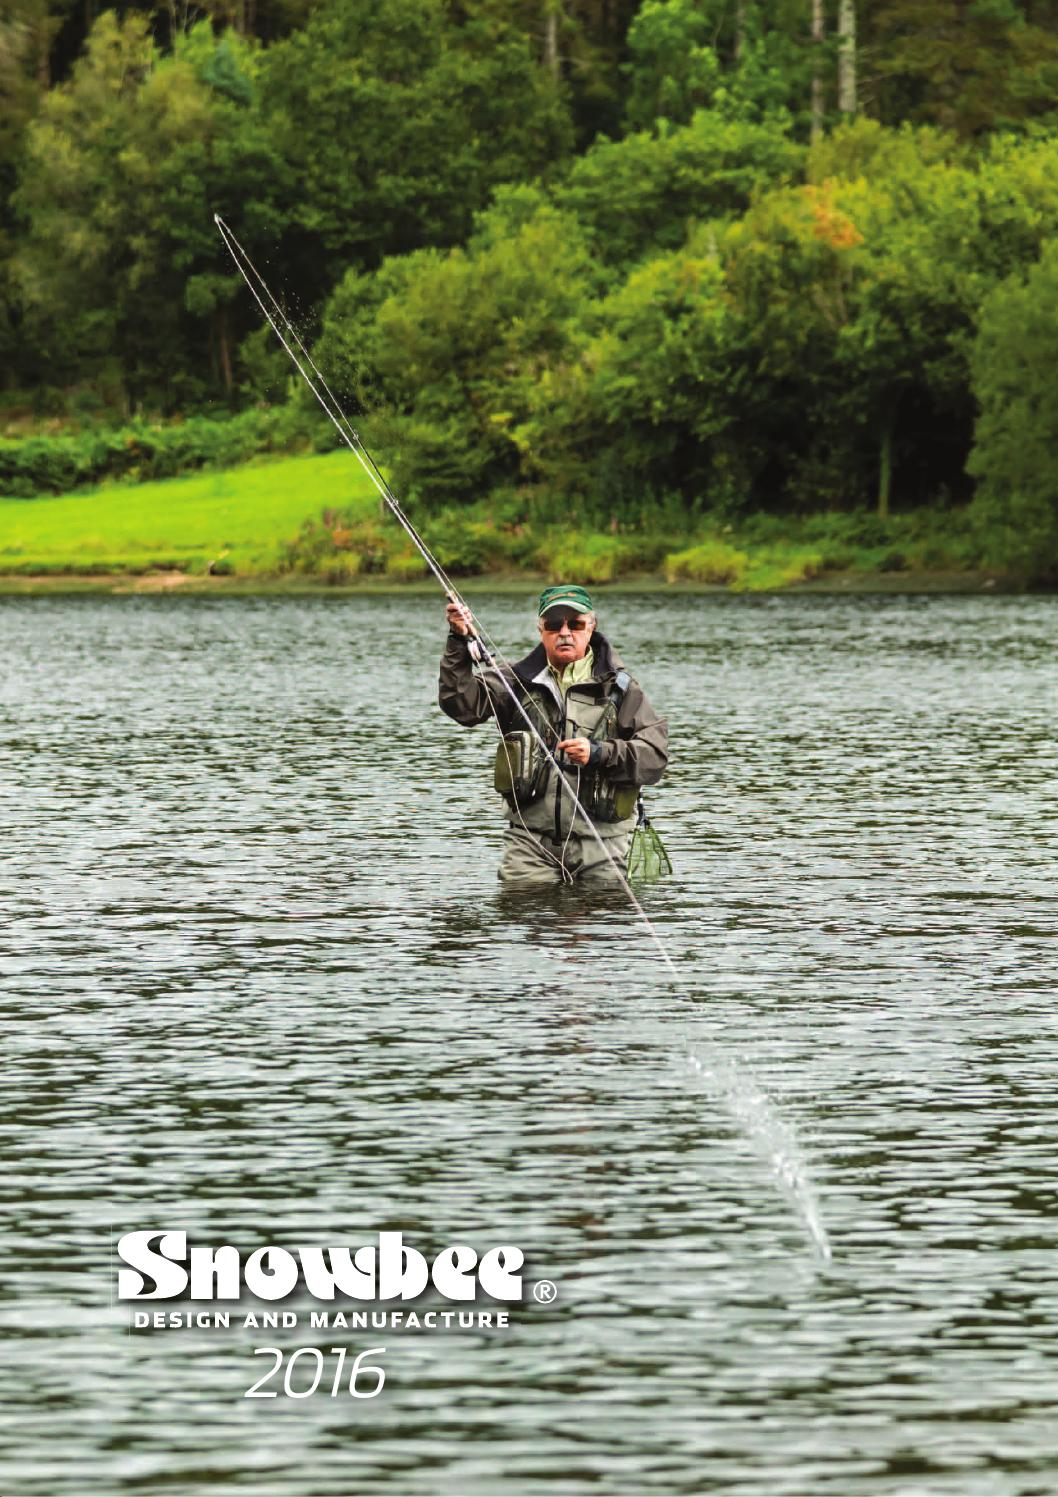 snowbee fly fishing catalogue 2016 by snowbee uk ltd issuu